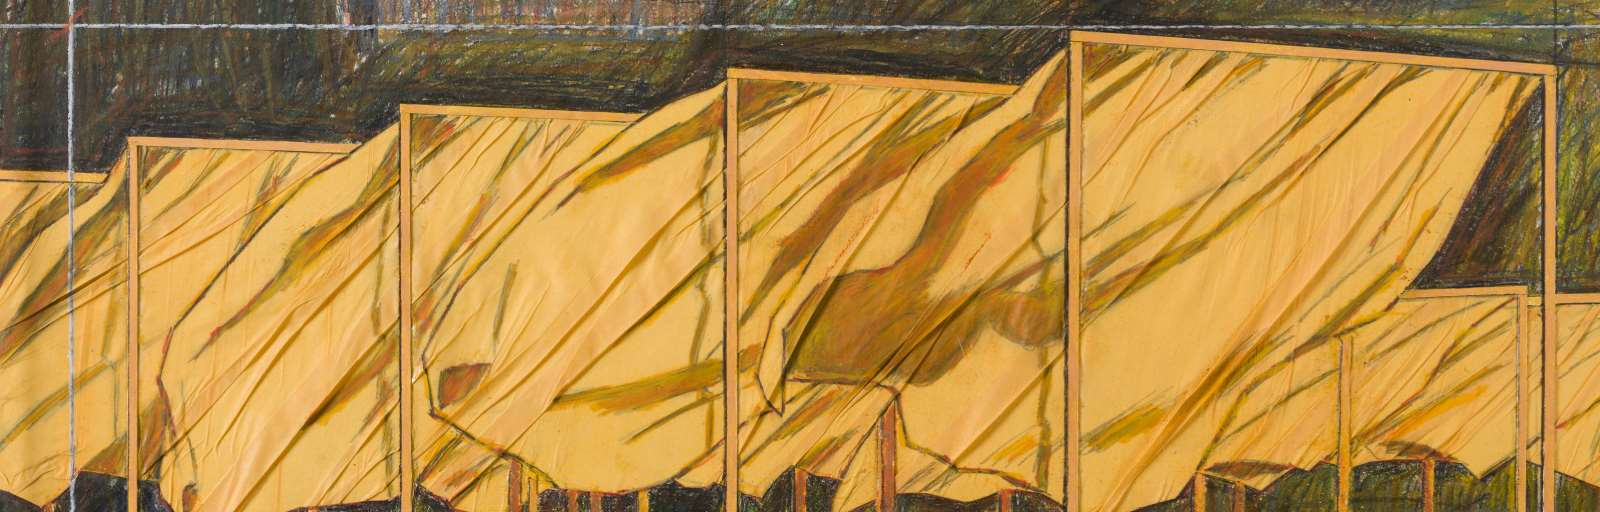 CHRISTO (1935 - 2020) - The Gates (Project for Central Park, New York City)